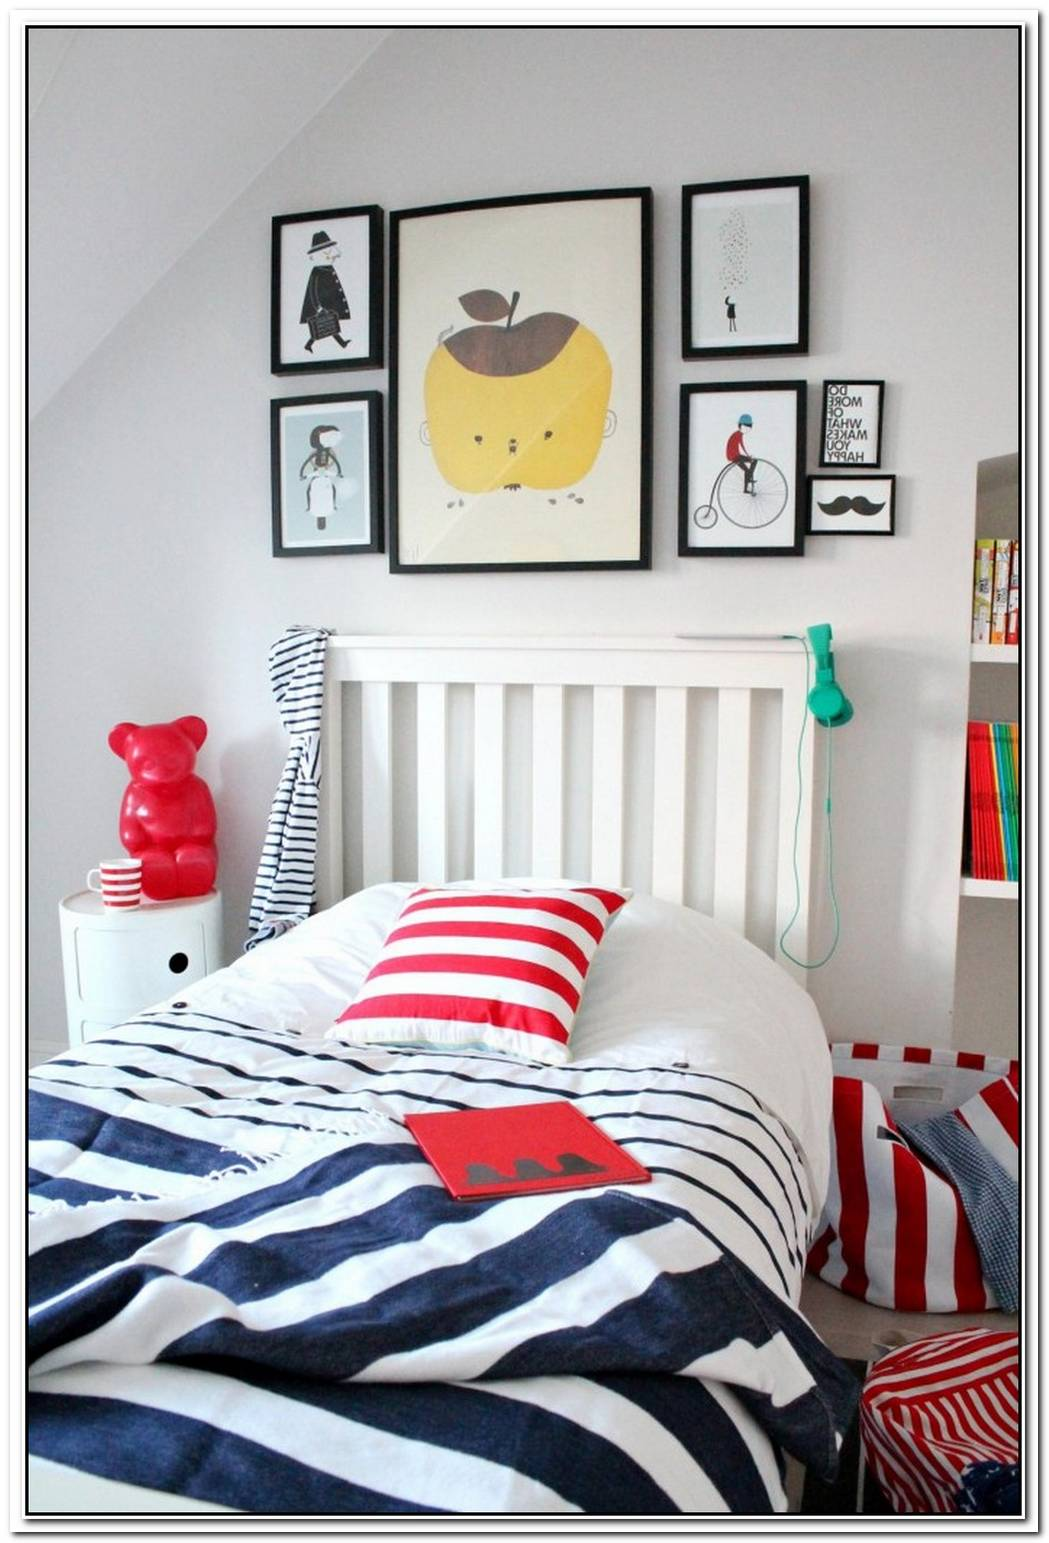 10 Ways To Style A Kids' Bedroom That'Ll Look Great For Years